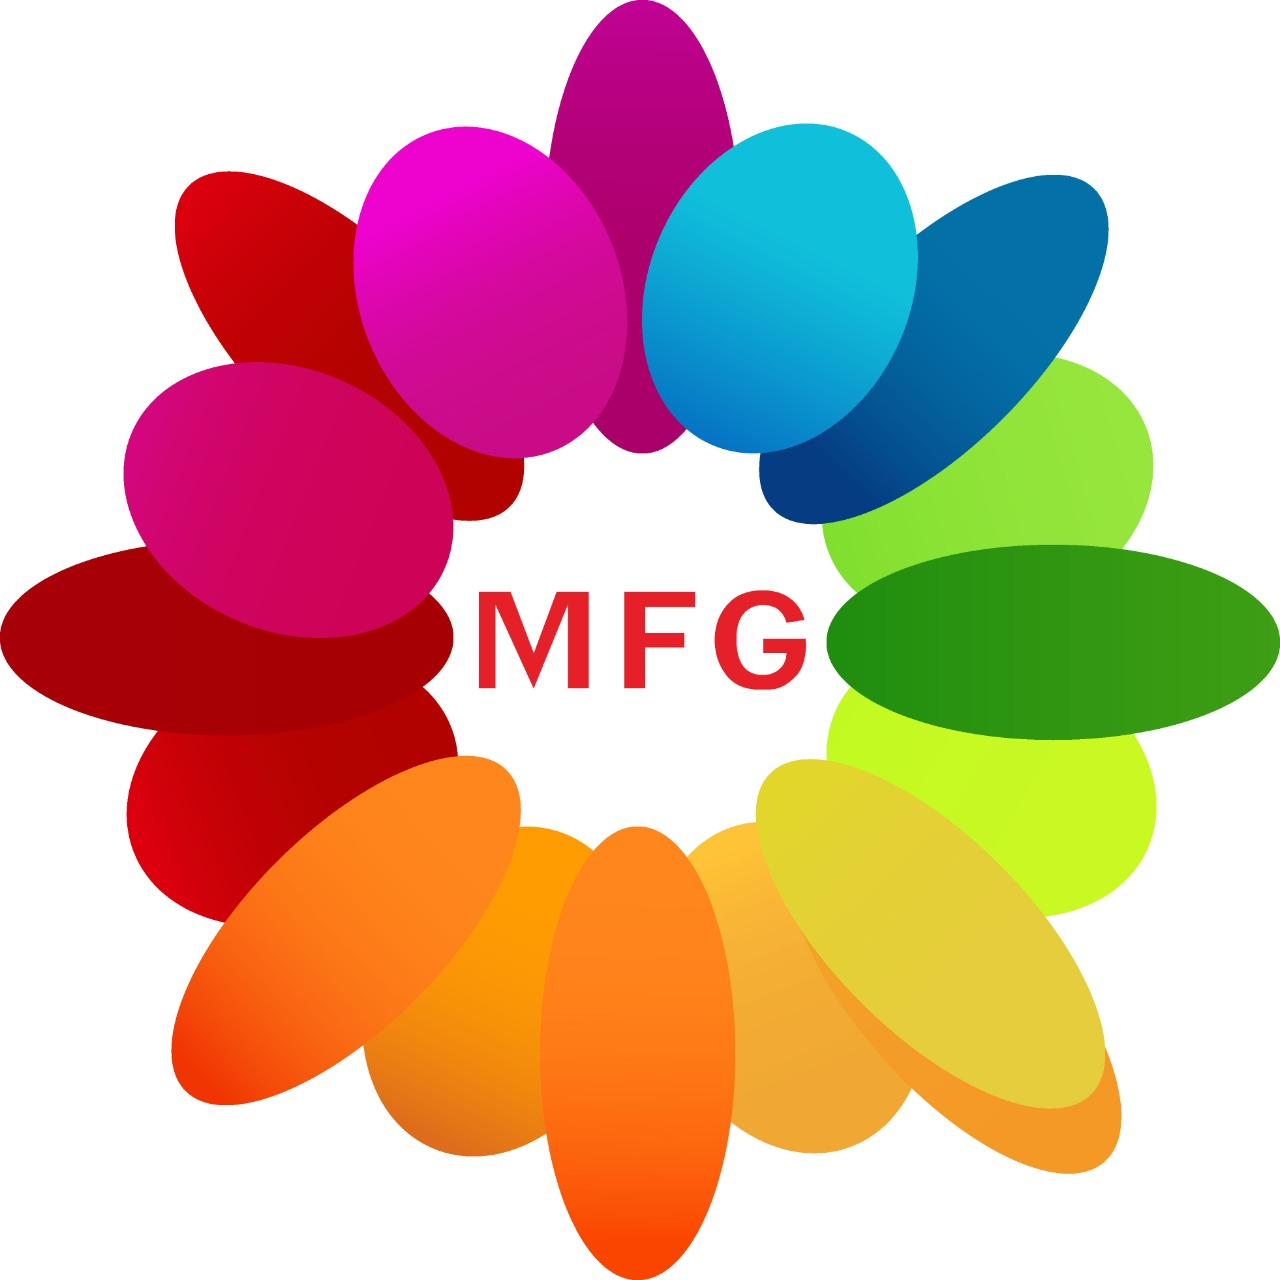 Bunch Of 20 Pink Roses With Santa Claus Soft Toy And Christmas Greeting Card